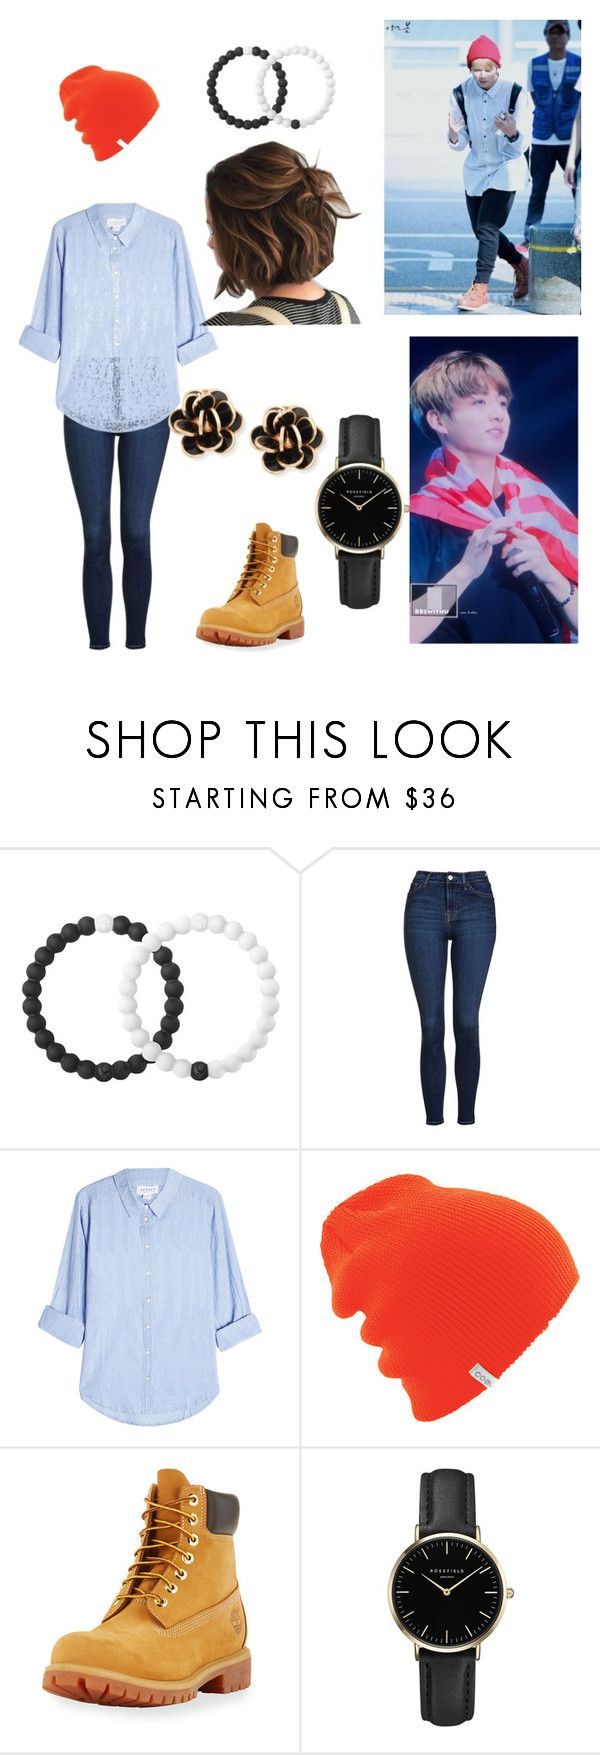 """""""Jungkook BTS Ropa de Pareja"""" by cande-anahi on Polyvore featuring Lokai, Topshop, Velvet, Timberland, ROSEFIELD and Chantecler"""